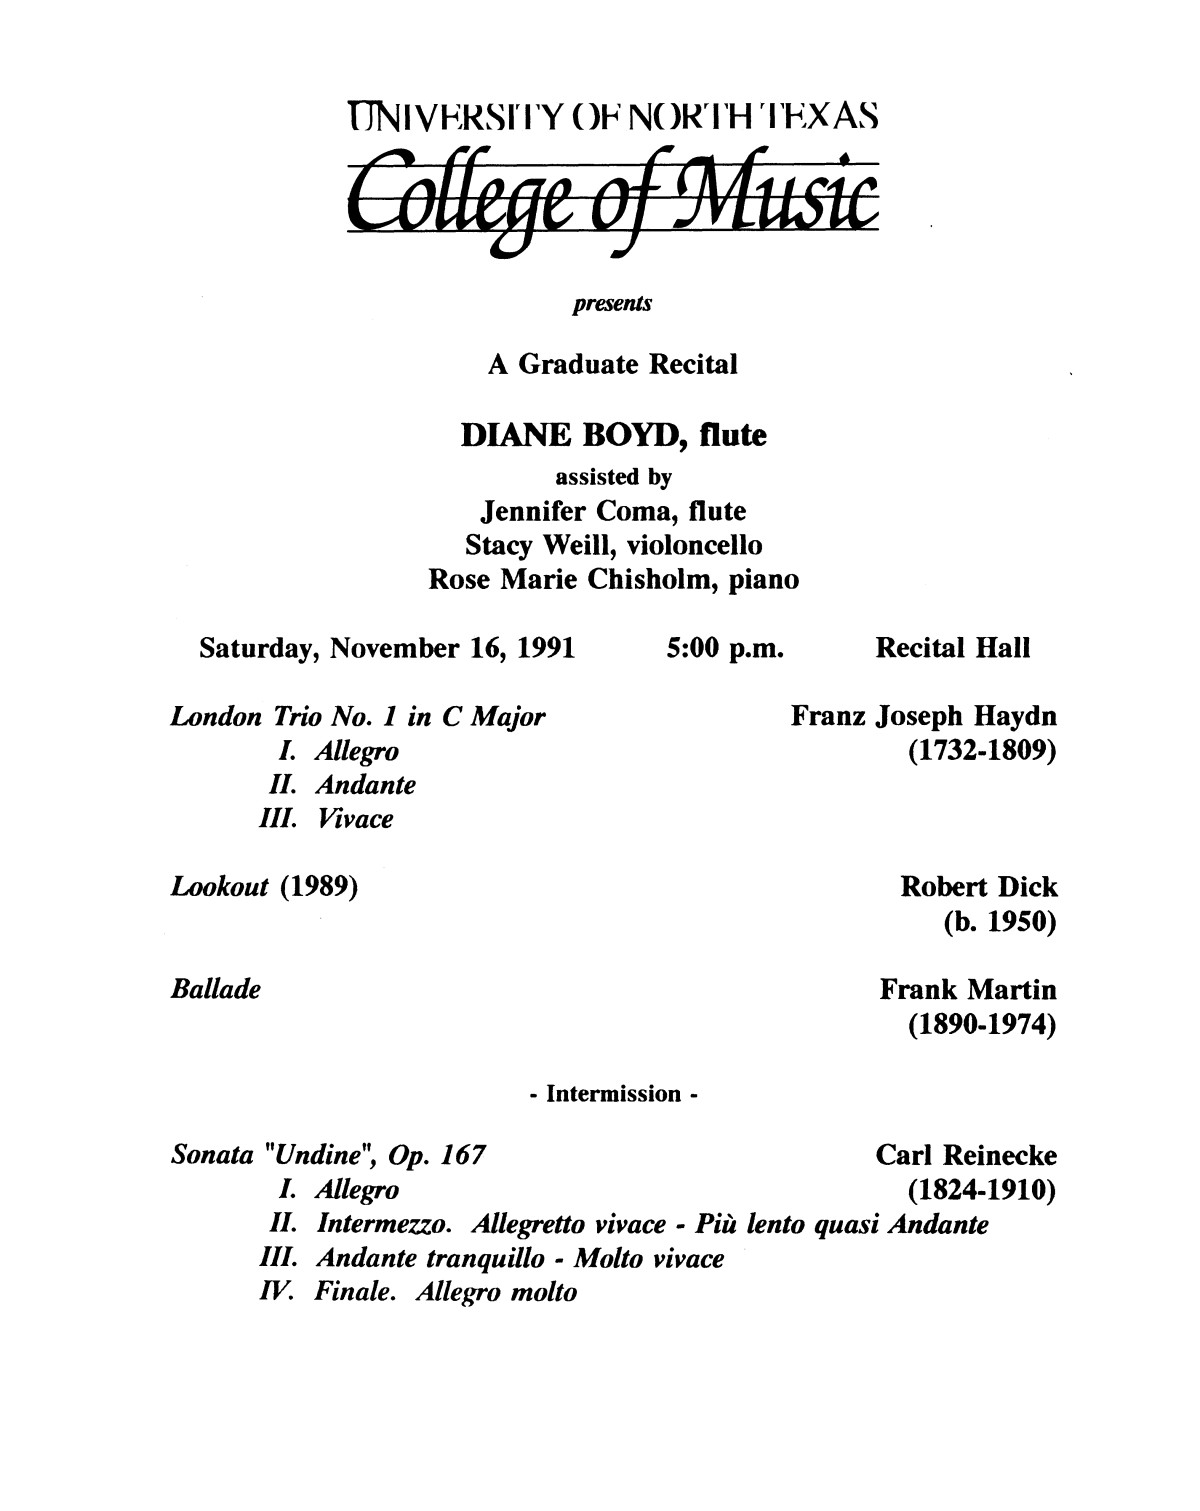 College of Music program book 1991-1992 Student Performances Vol. 2                                                                                                      [Sequence #]: 58 of 310